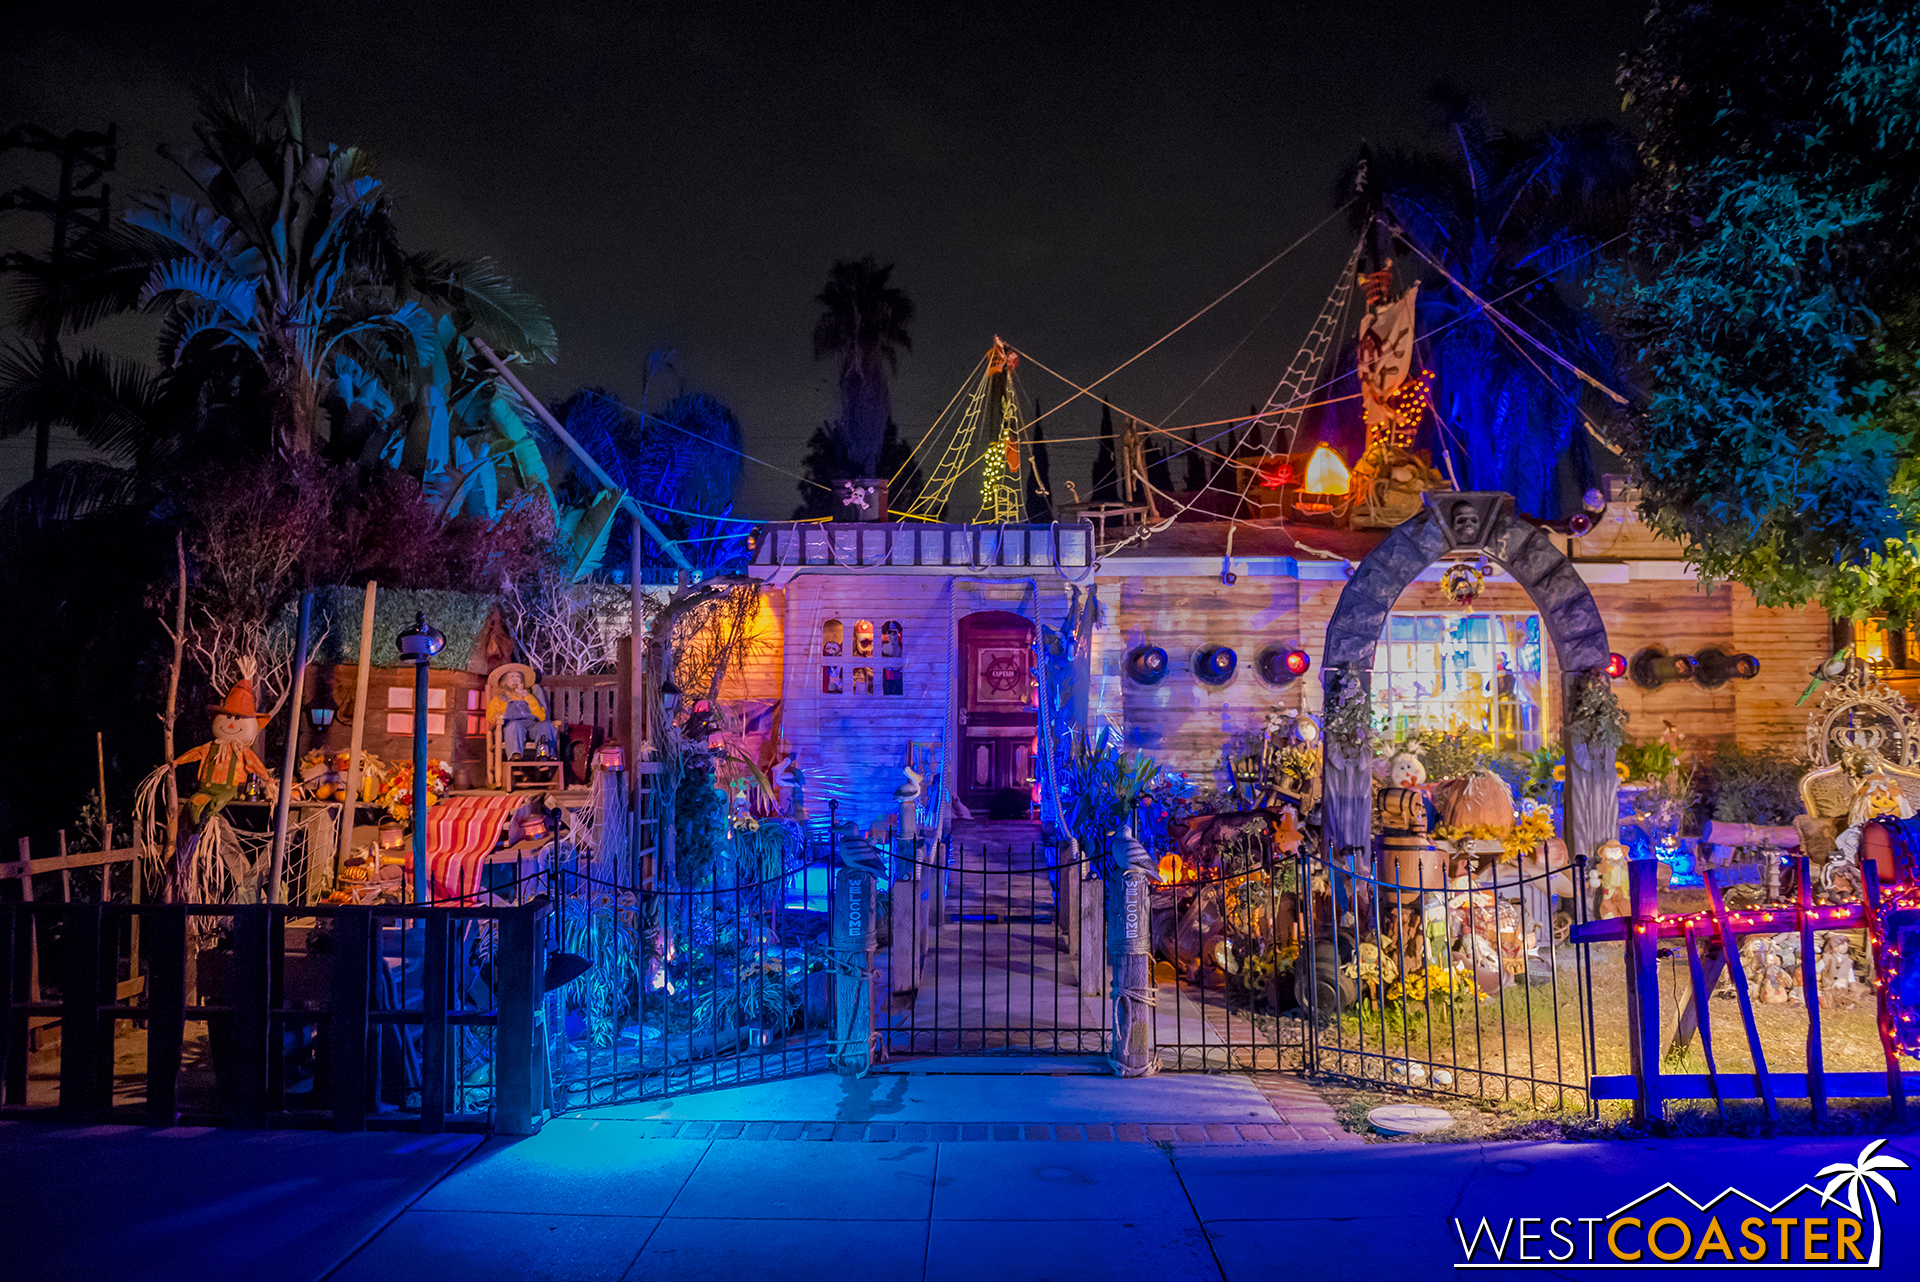 This incredible Pirates of the Caribbean yard display transformed the house at Holidays Fantasies Come to Life!